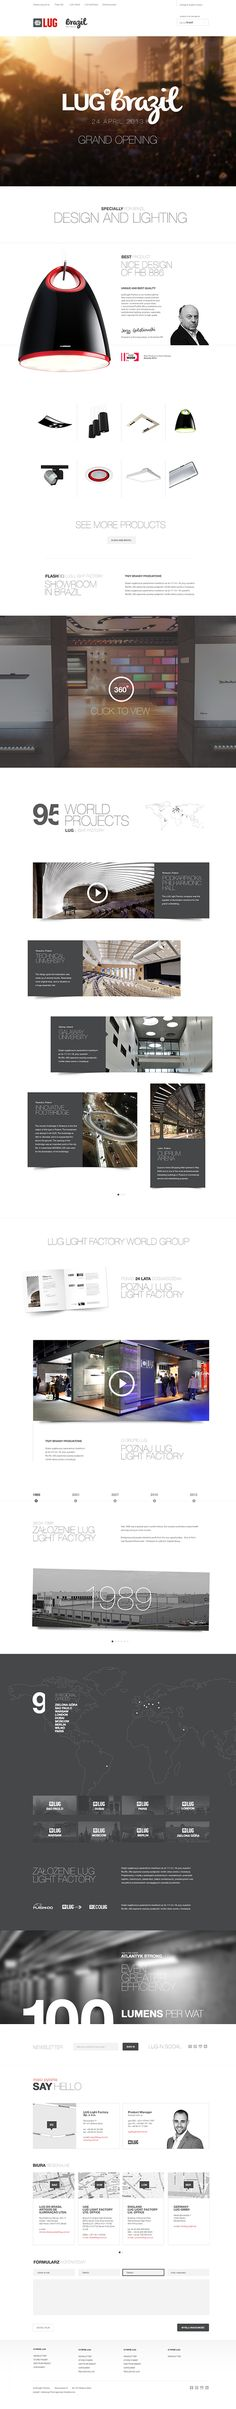 LUG in Brazil on Behance